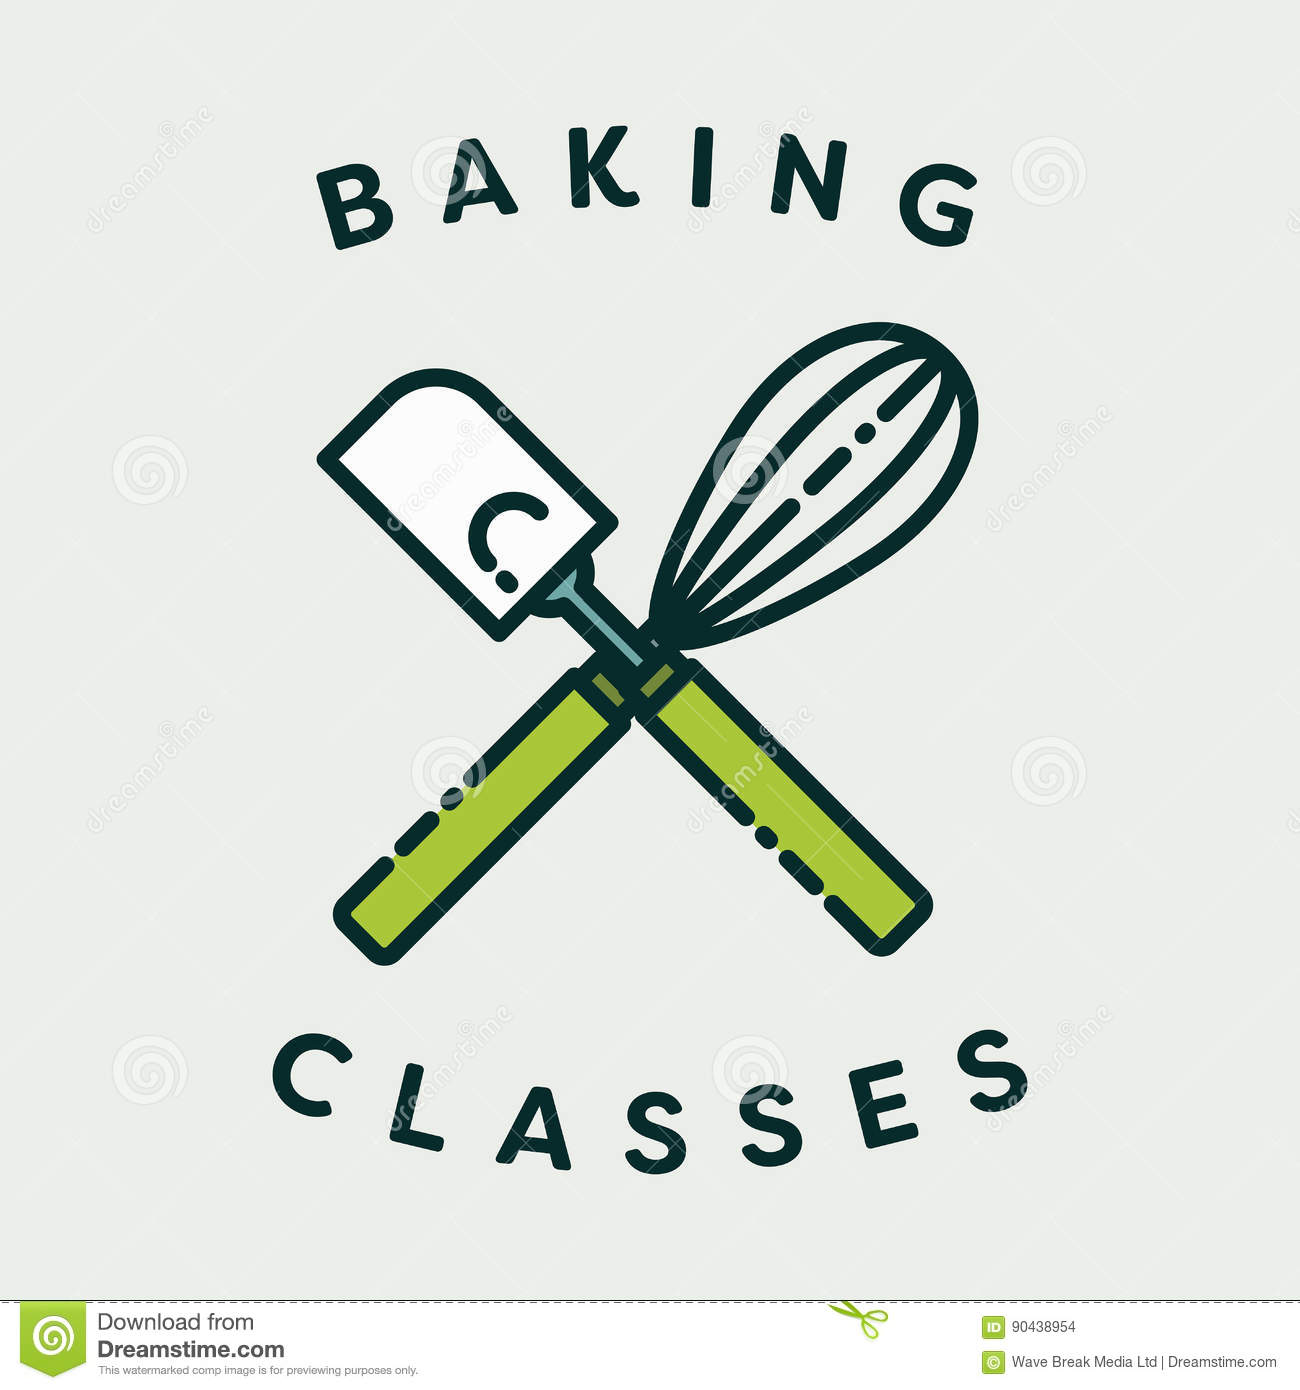 Vector image of spatula and egg beater with text baking classes